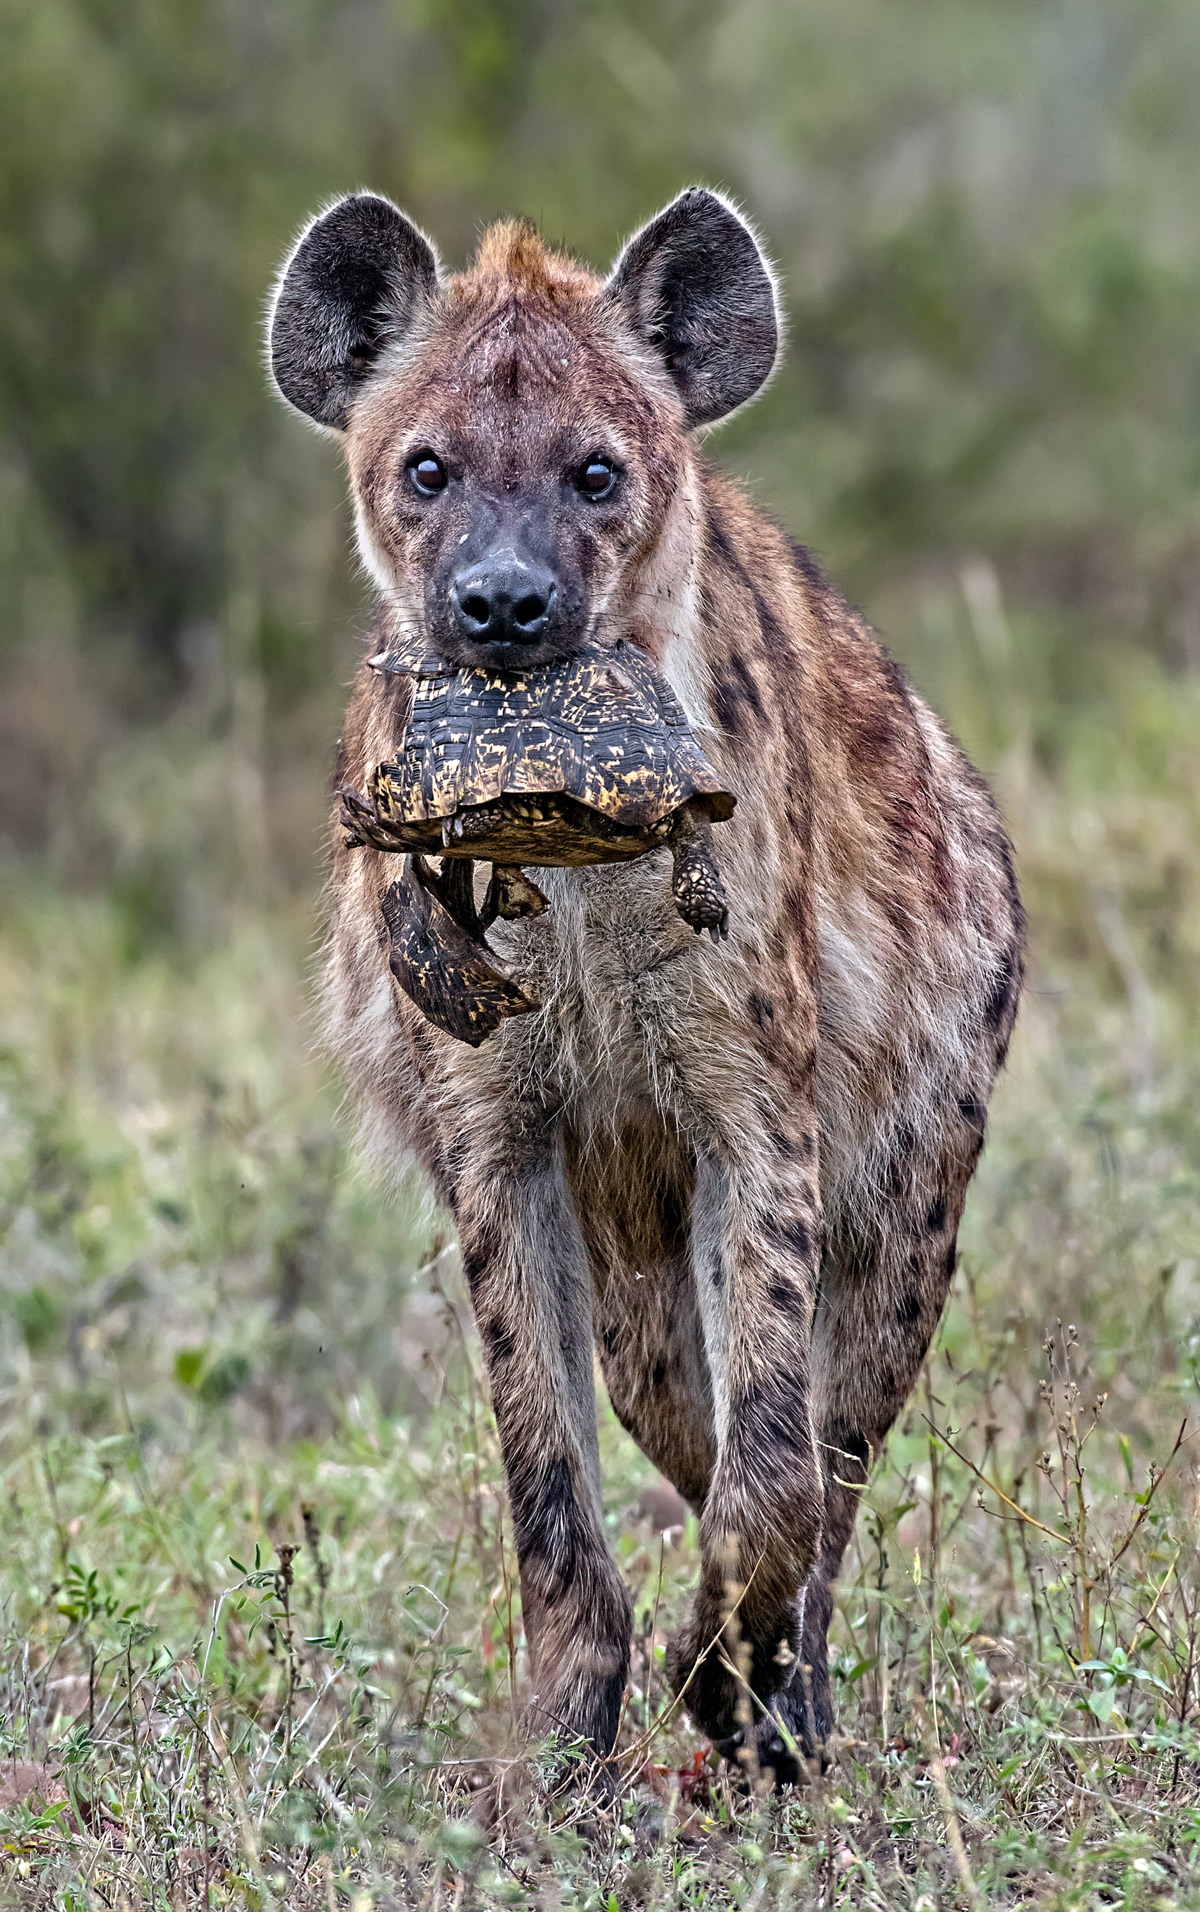 A spotted hyena with a leopard tortoise in Kruger National Park, South Africa © Ernest Porter